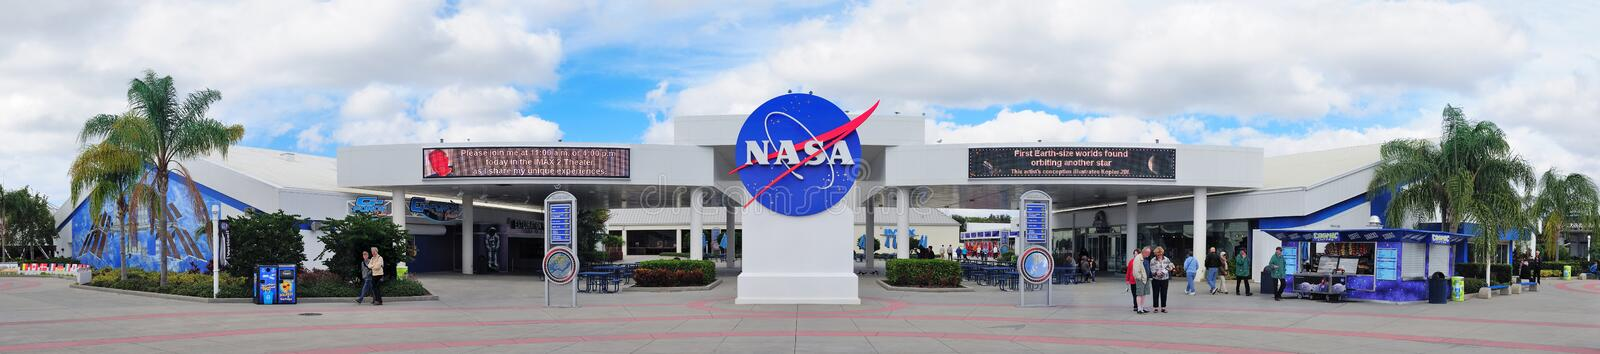 Download Kennedy Space Center Editorial Stock Image - Image: 24285764